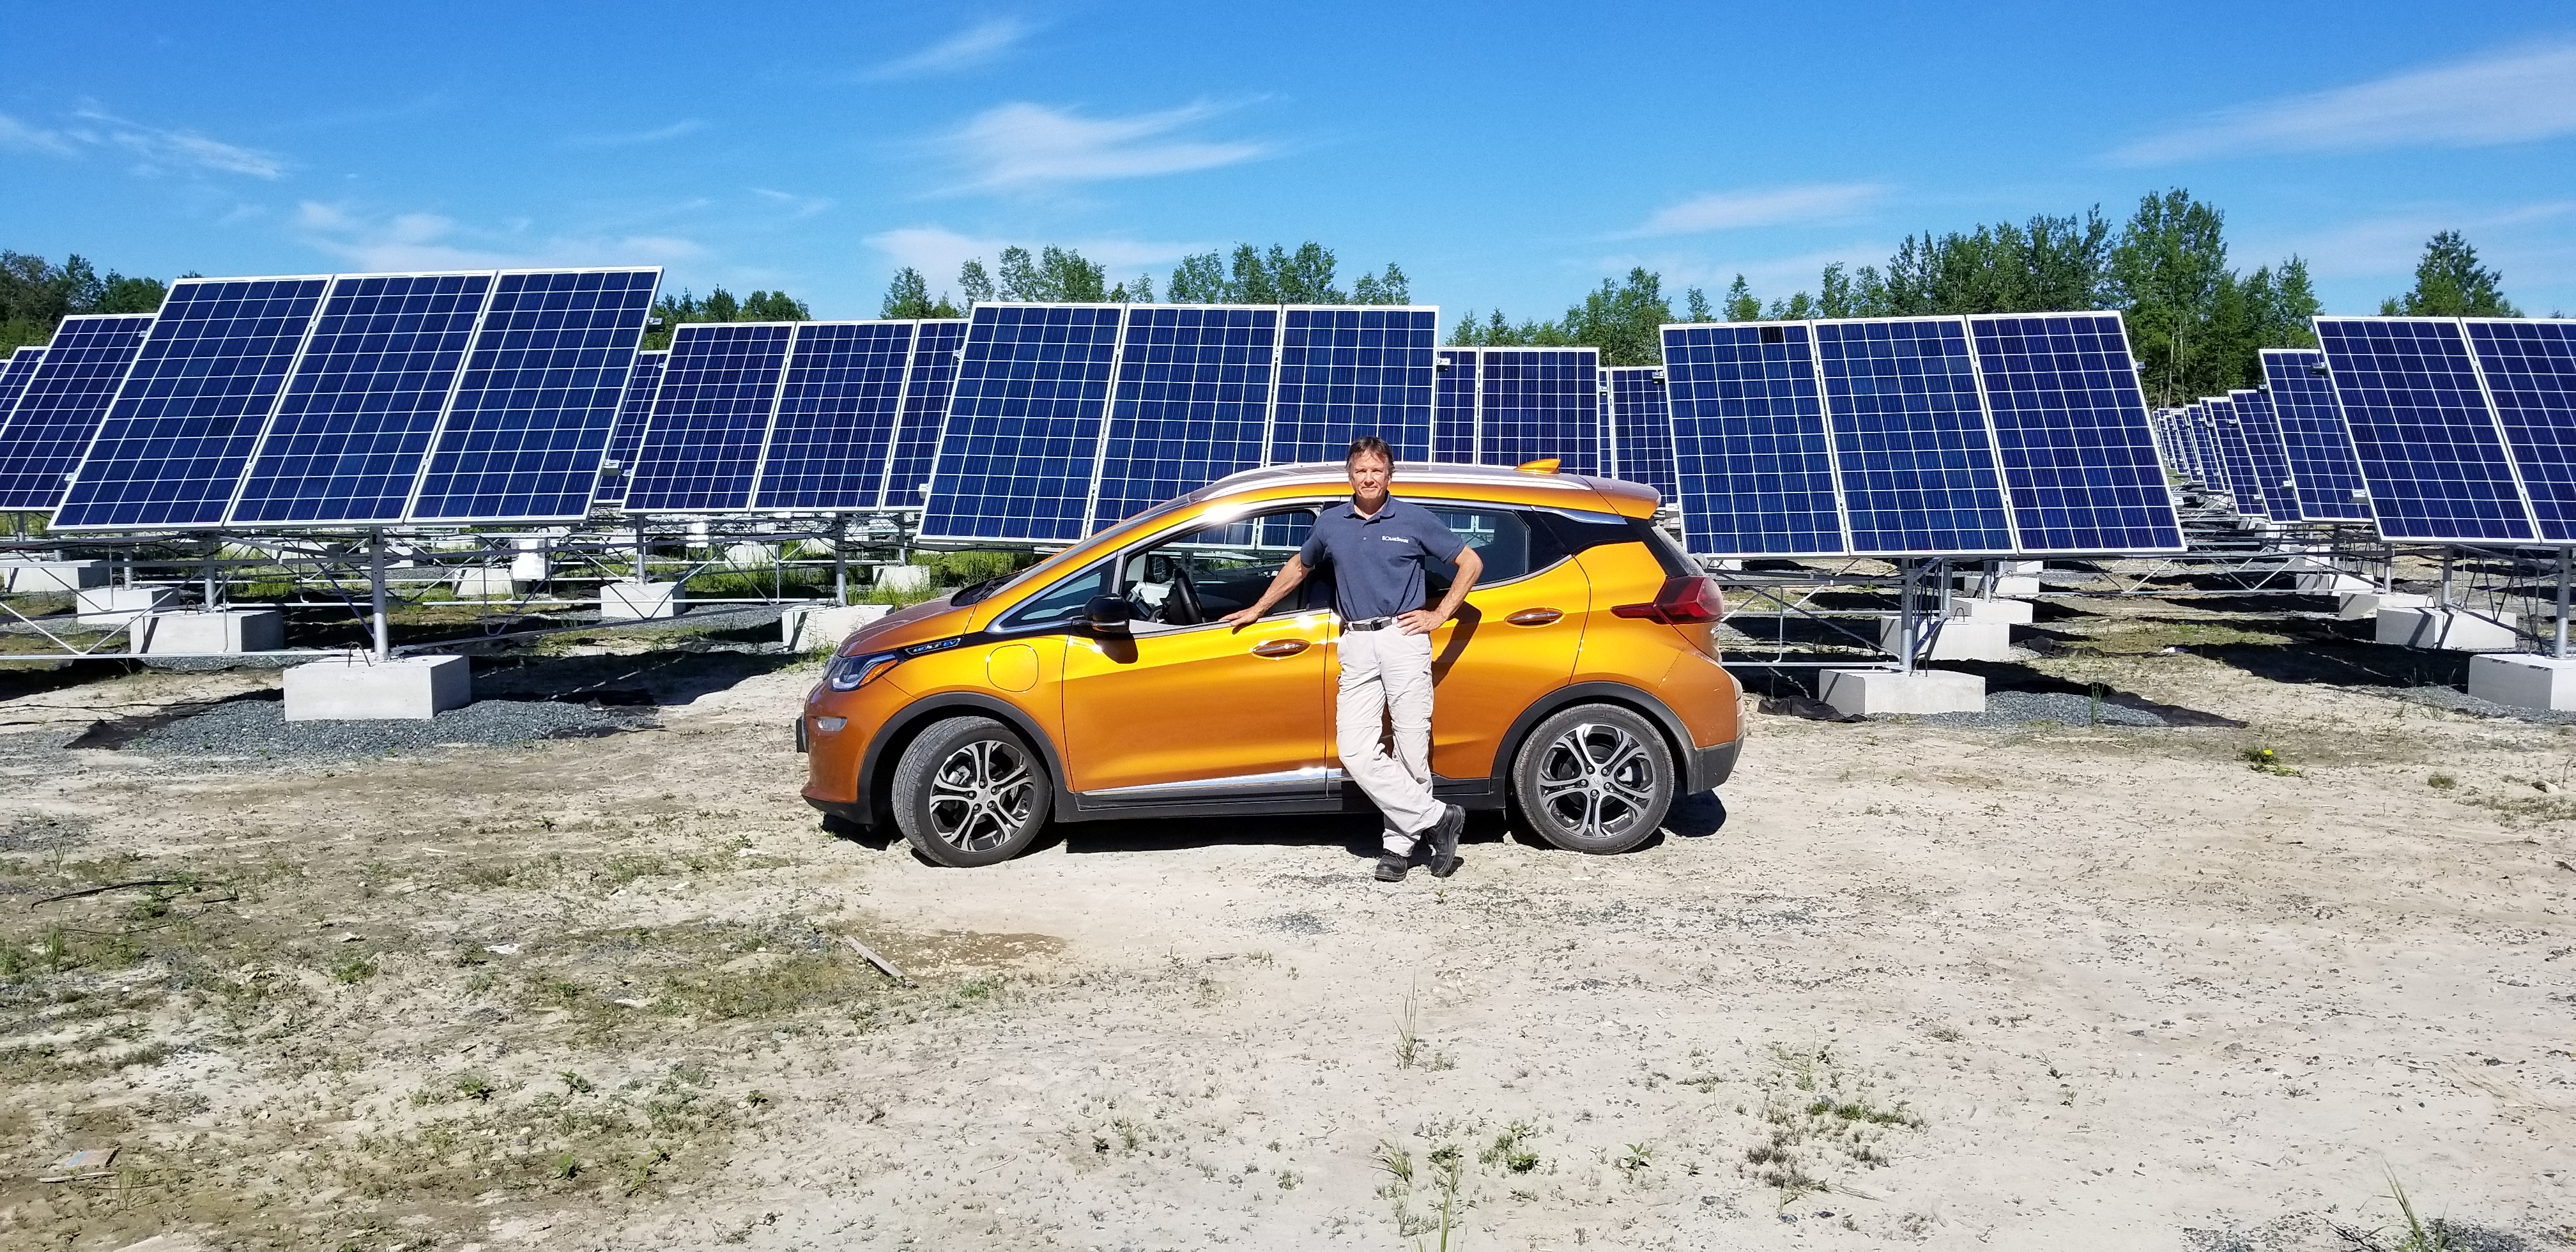 198 Solarshare Co Operative Reaches 60 Million In Projects Green Solar Panel Car Ford Mike Brigham Of With His Pure Electric Chevrolet Bolt